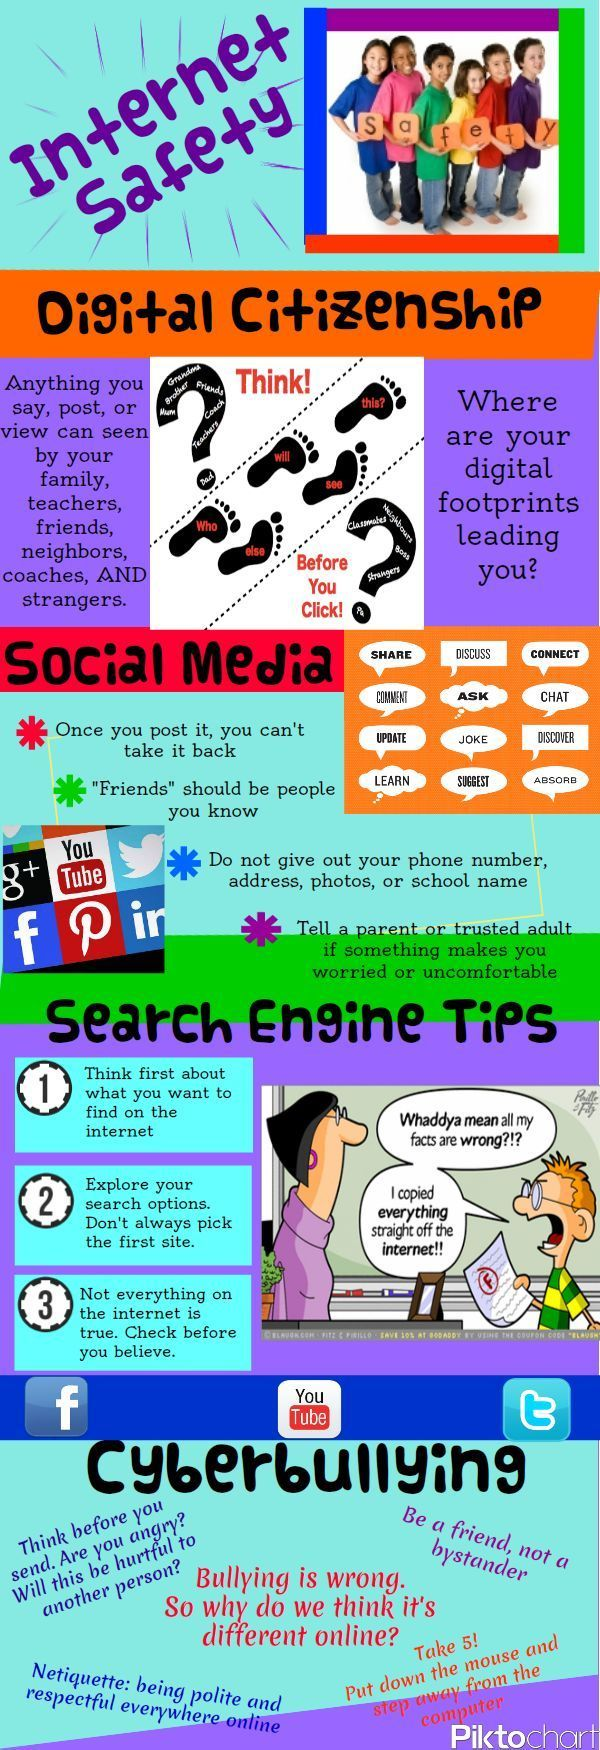 Digital citizenship - internet safety